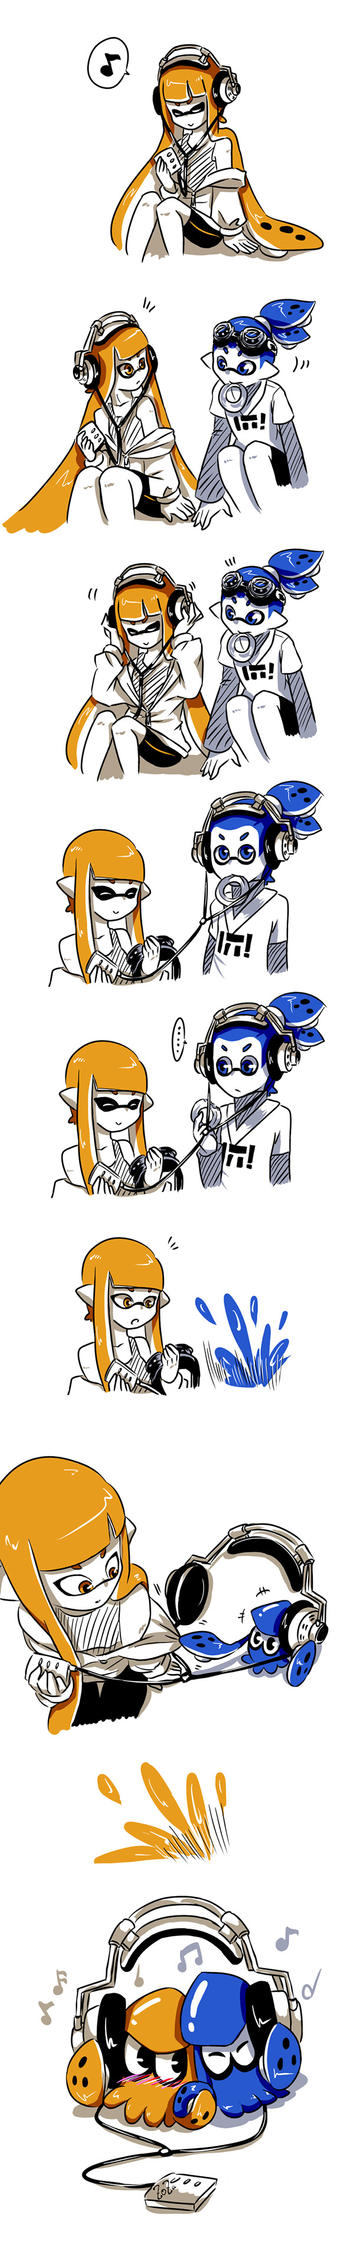 [Splatoon] Pudding and Donut little comic by zzoza